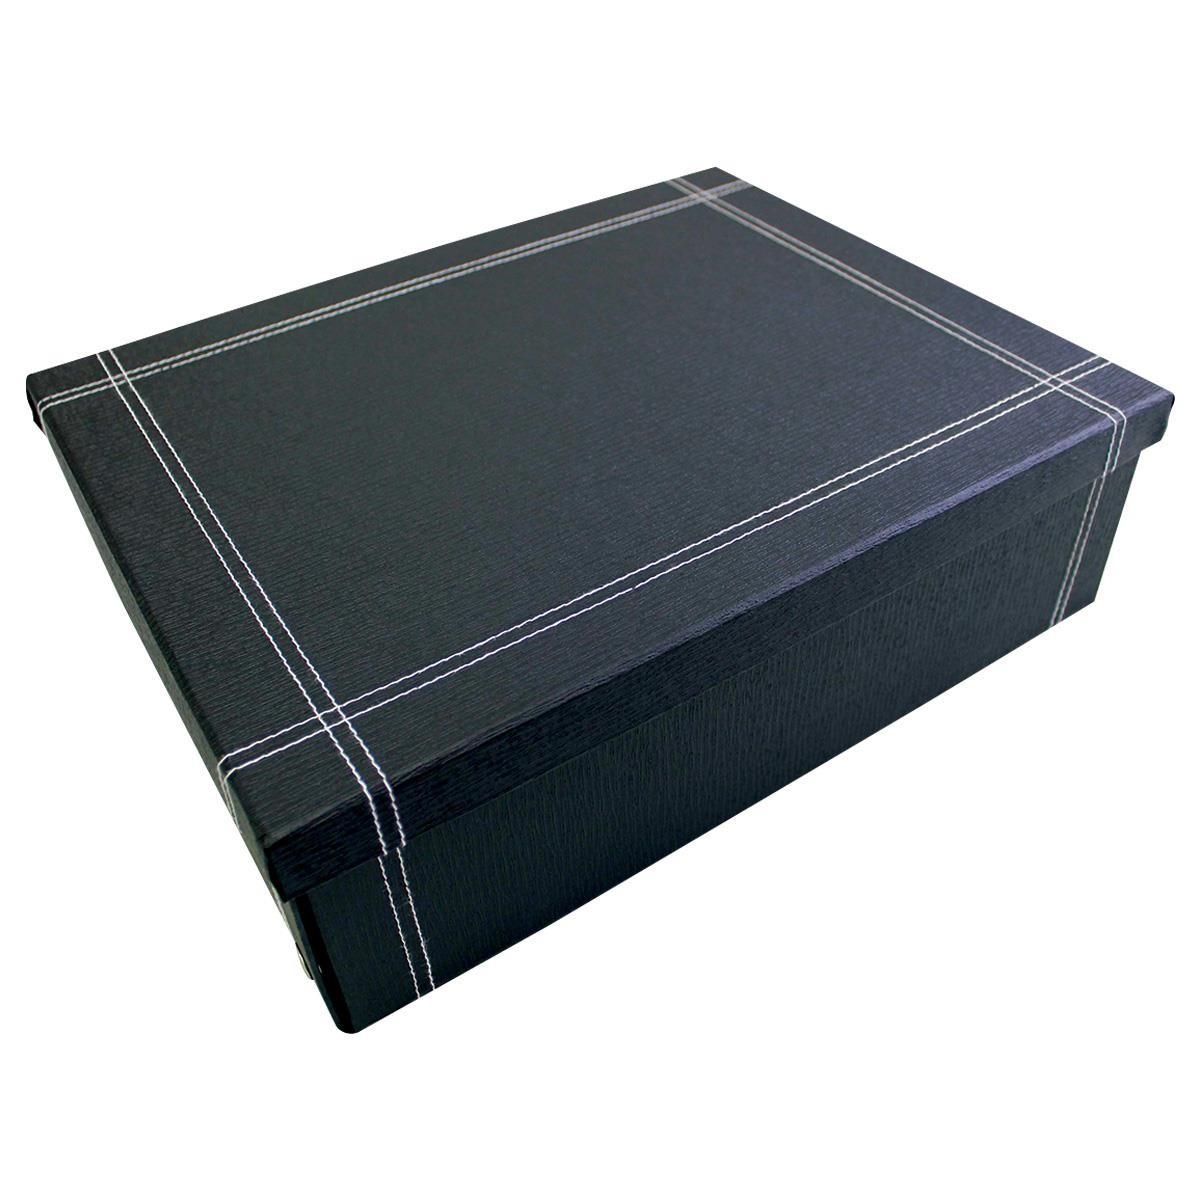 Kanata Keepsake Box Small